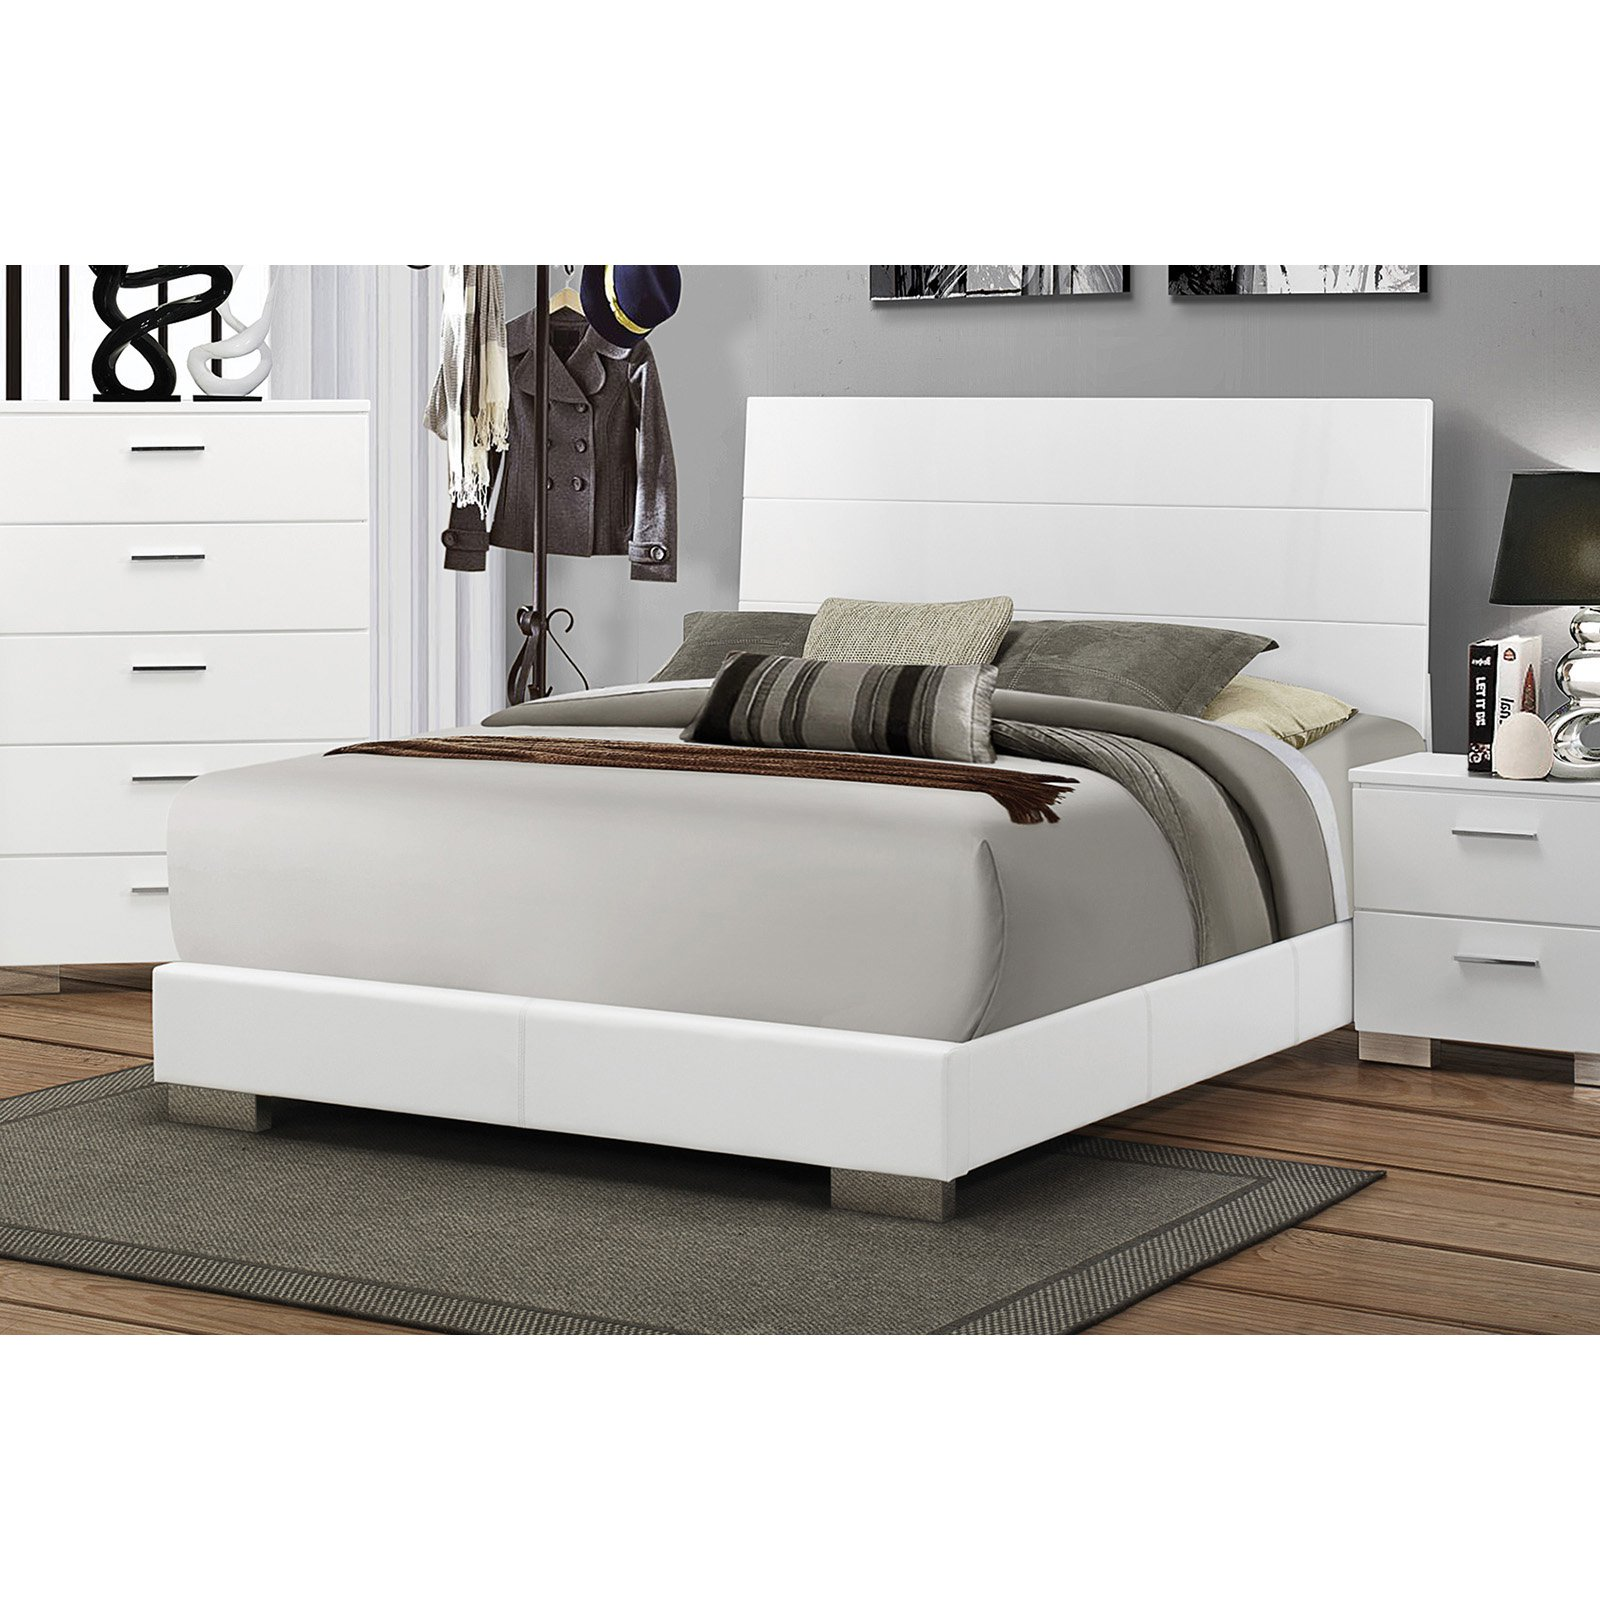 Coaster Furniture Felicity Upholstered Bed